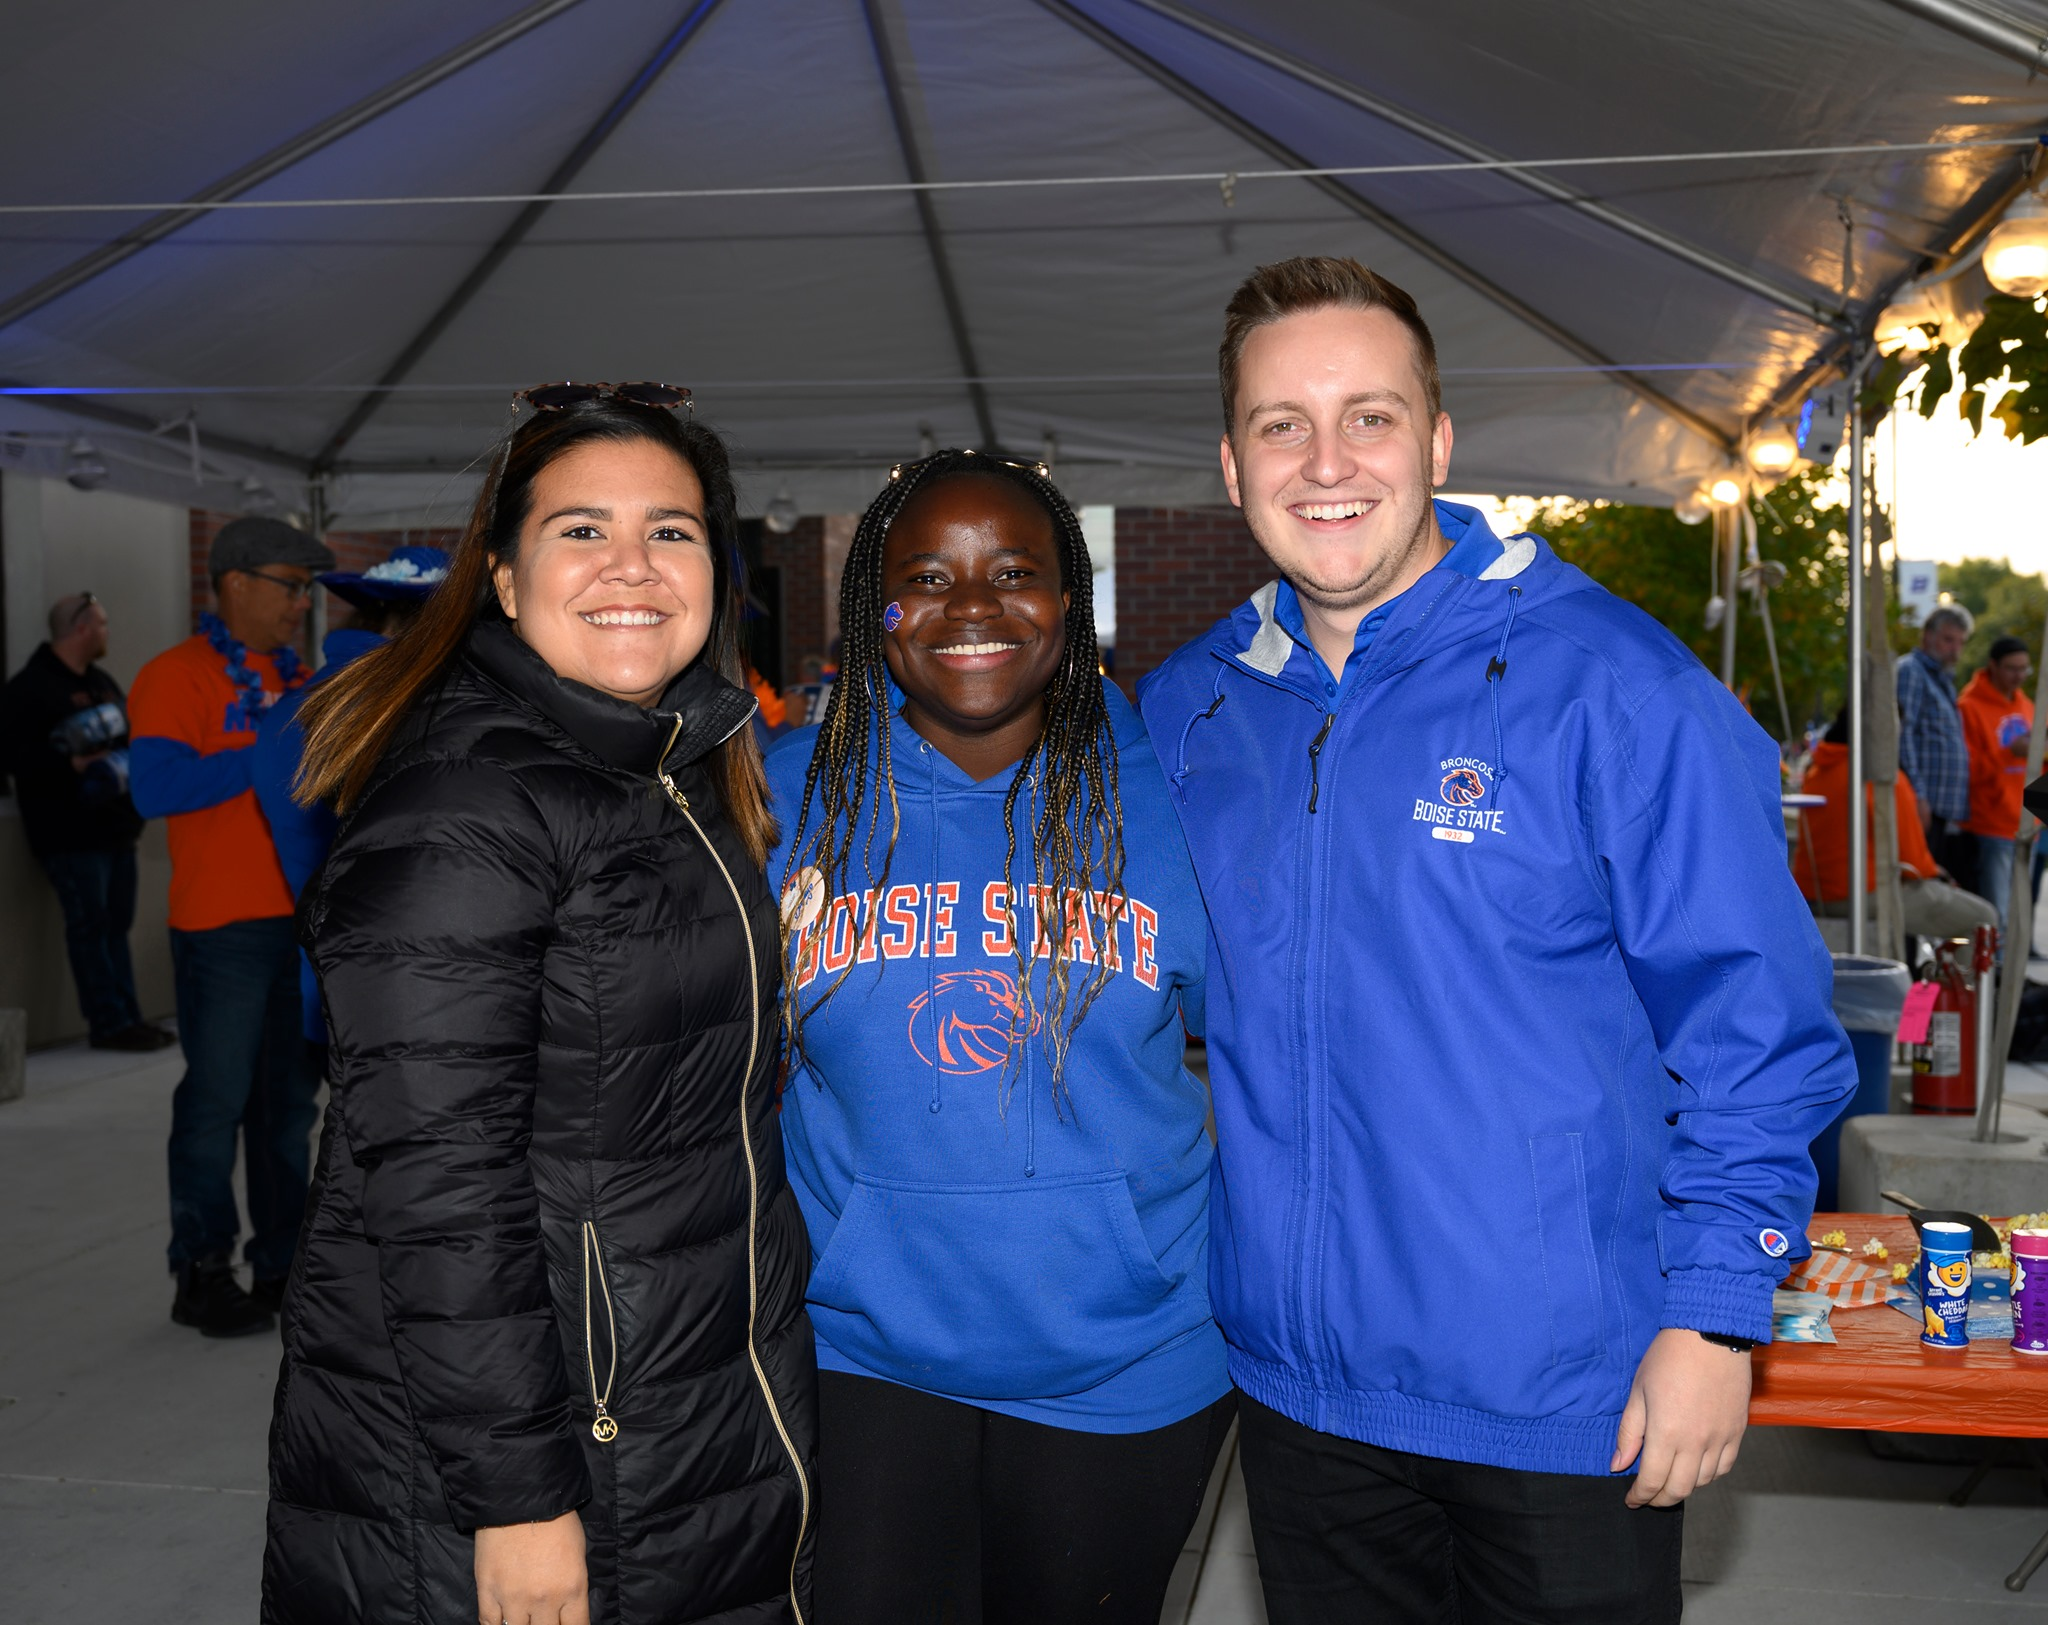 boise state friends. in. tailgating tent